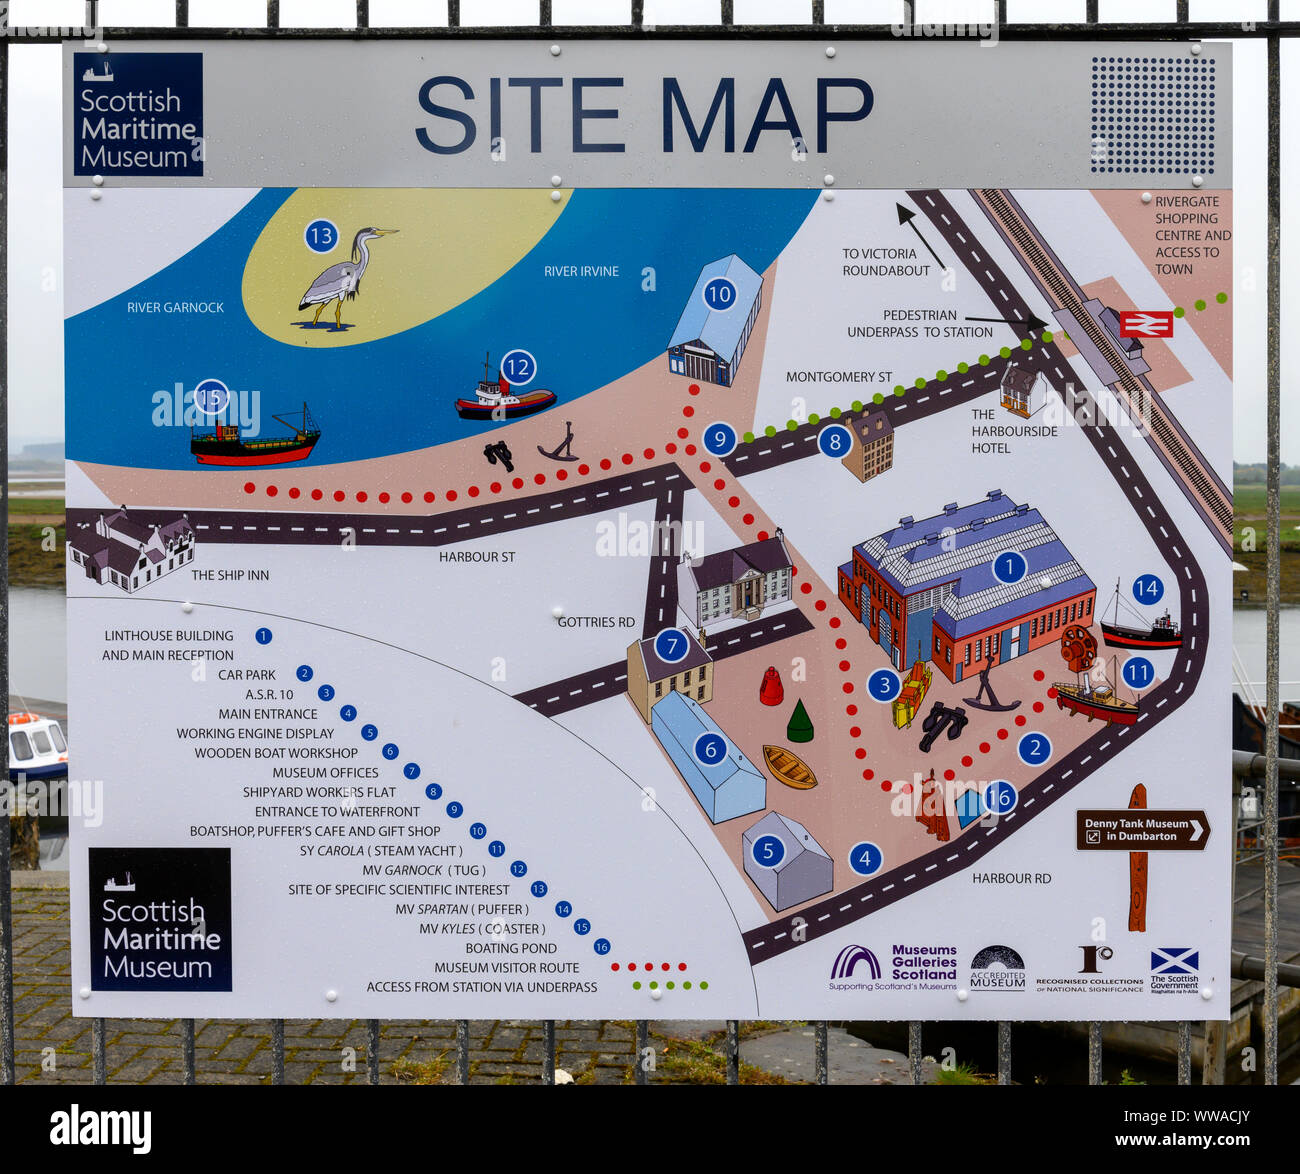 Site map for the Scottish Maritime Museum situated at Harbour Road, Irvine, Ayrshire, Scotland, UK Stock Photo